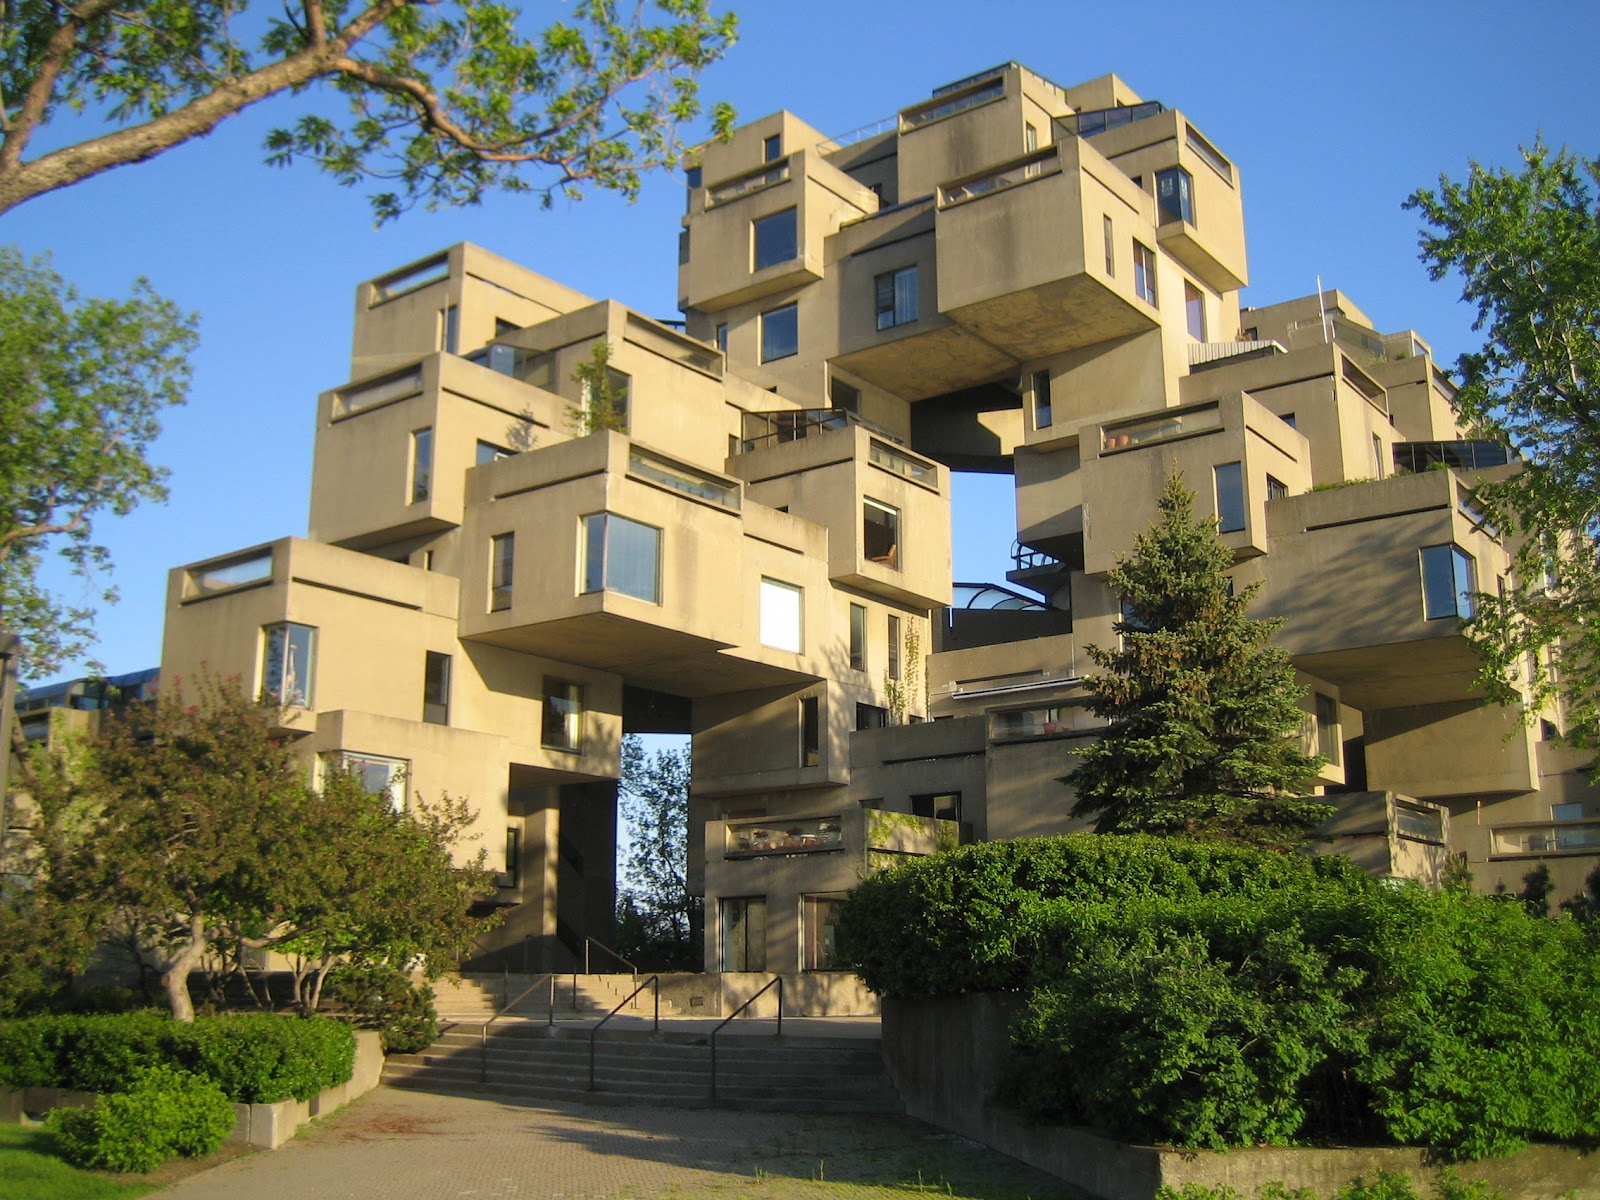 Apartment Building Layout Habitat 67 3 By Moshe Safdie Cube Modern Architecture